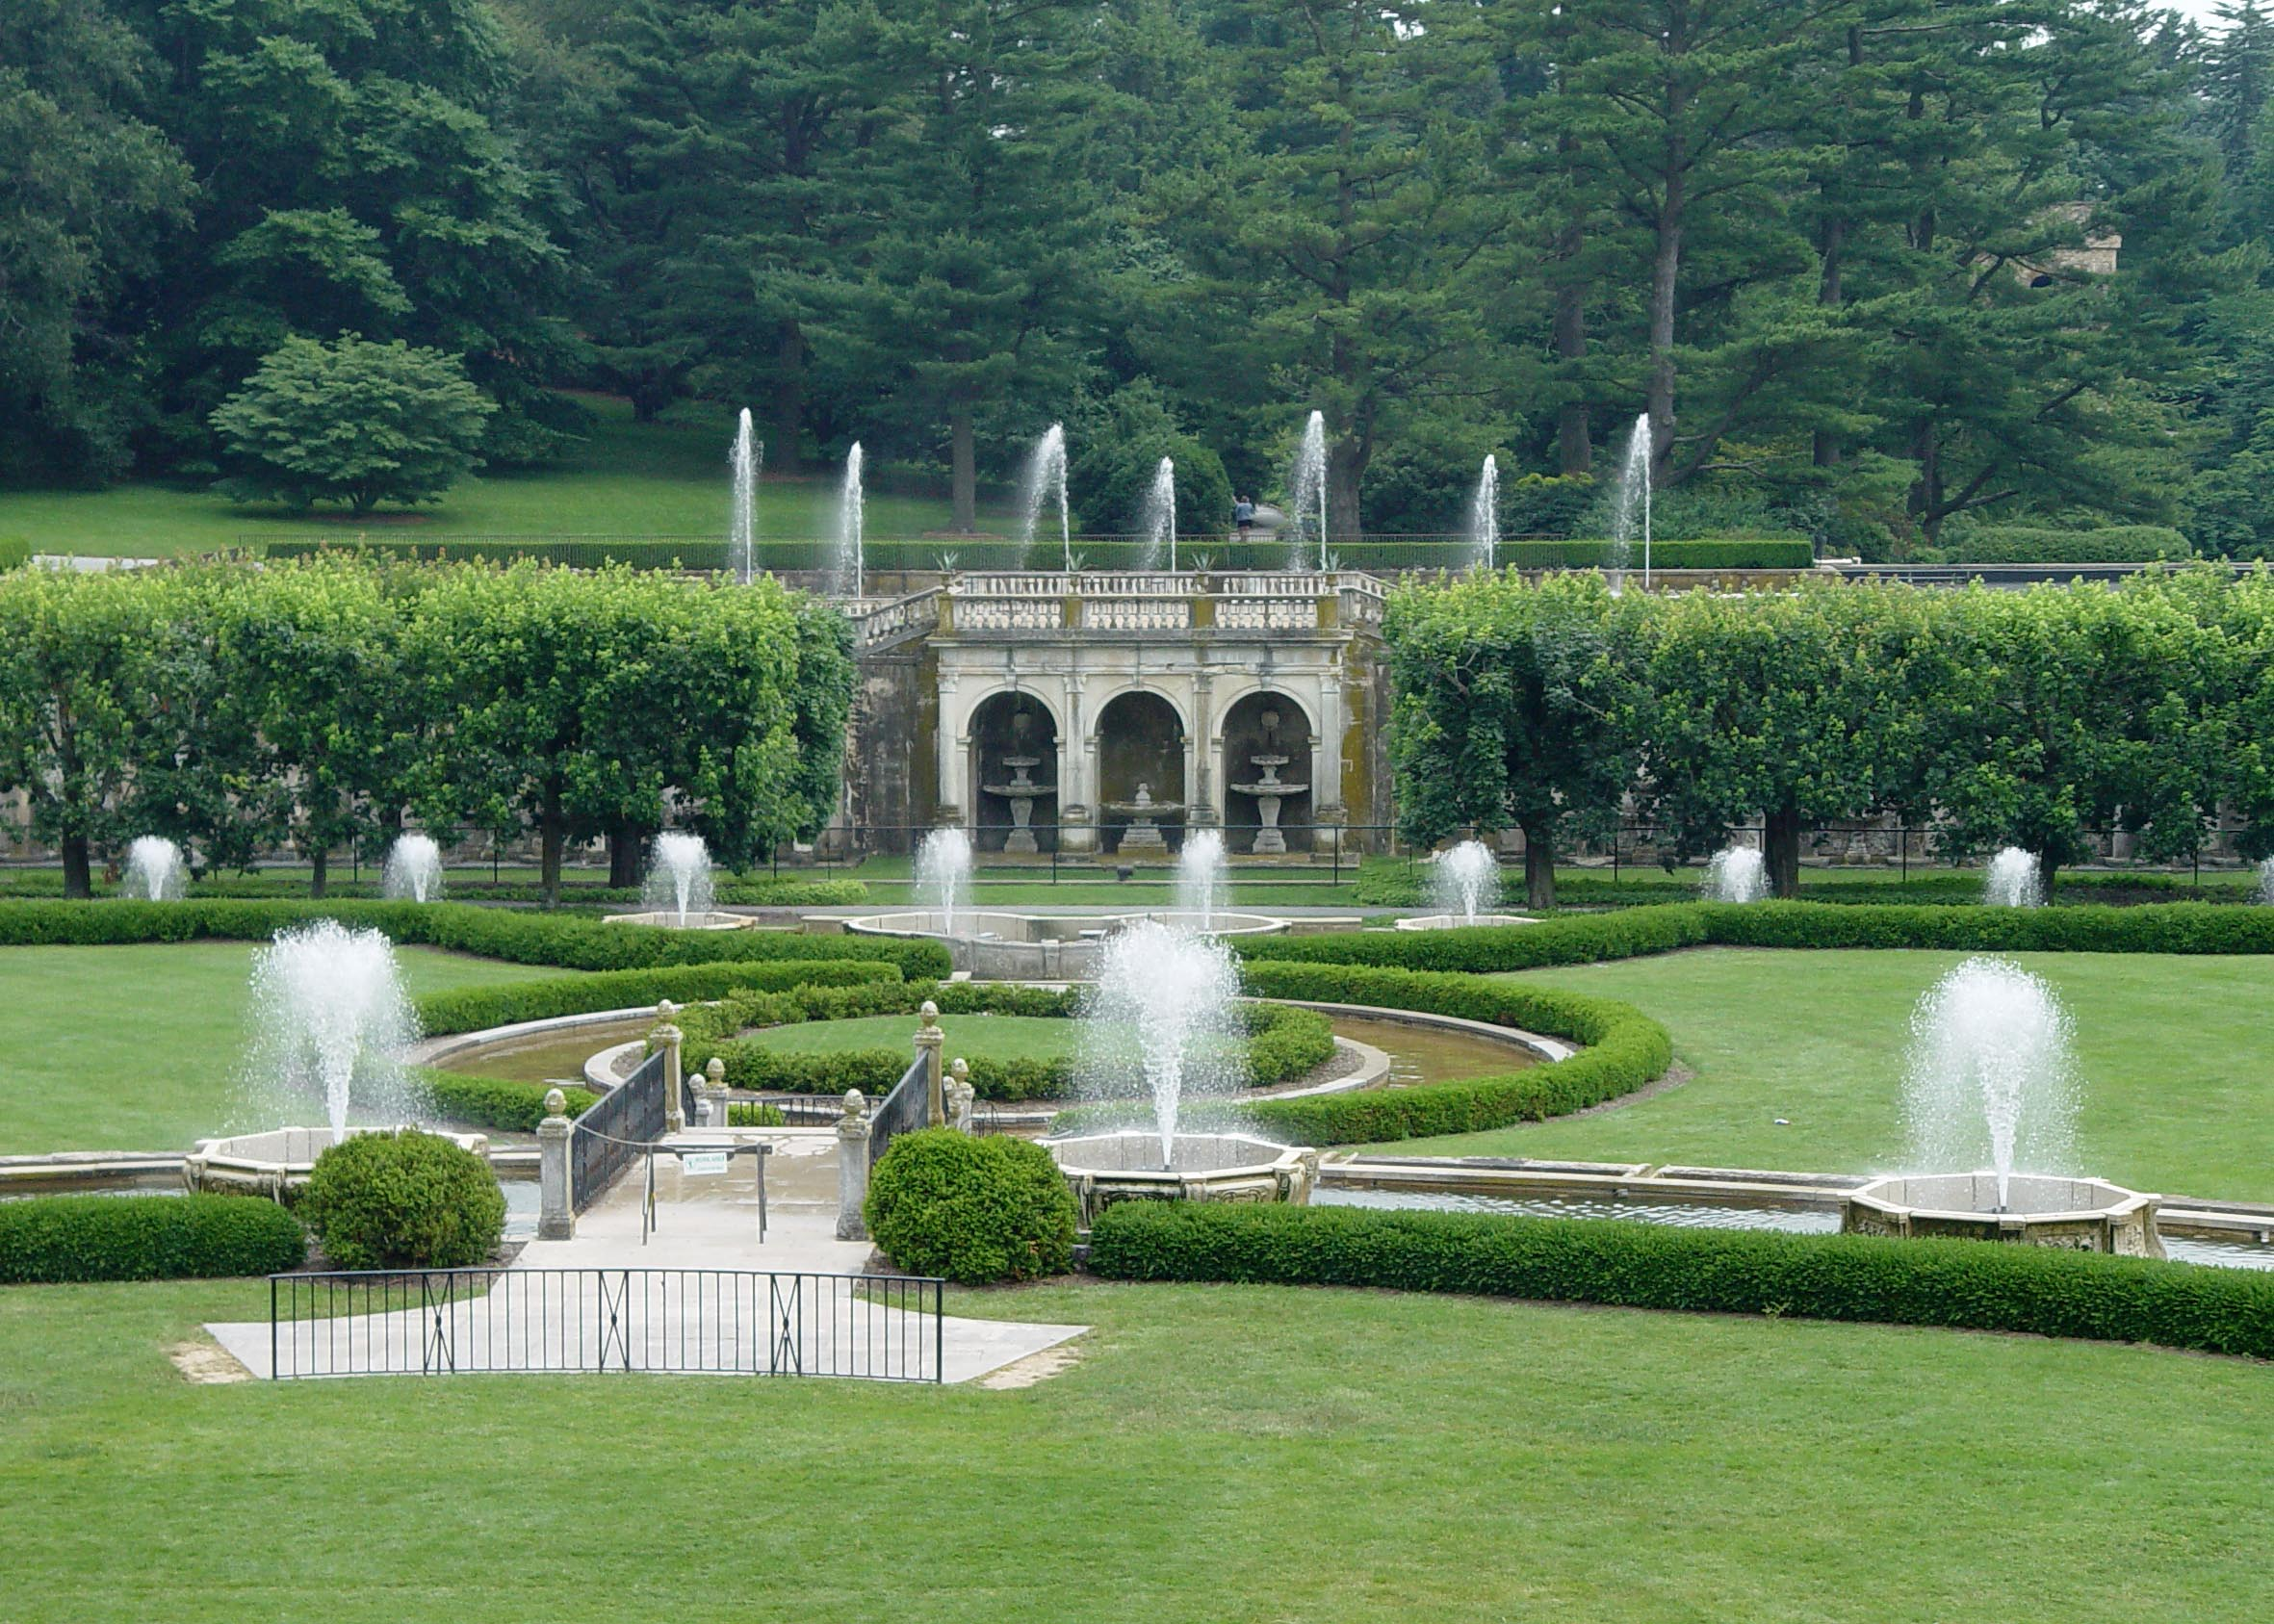 The Main Fountains At Longwood.